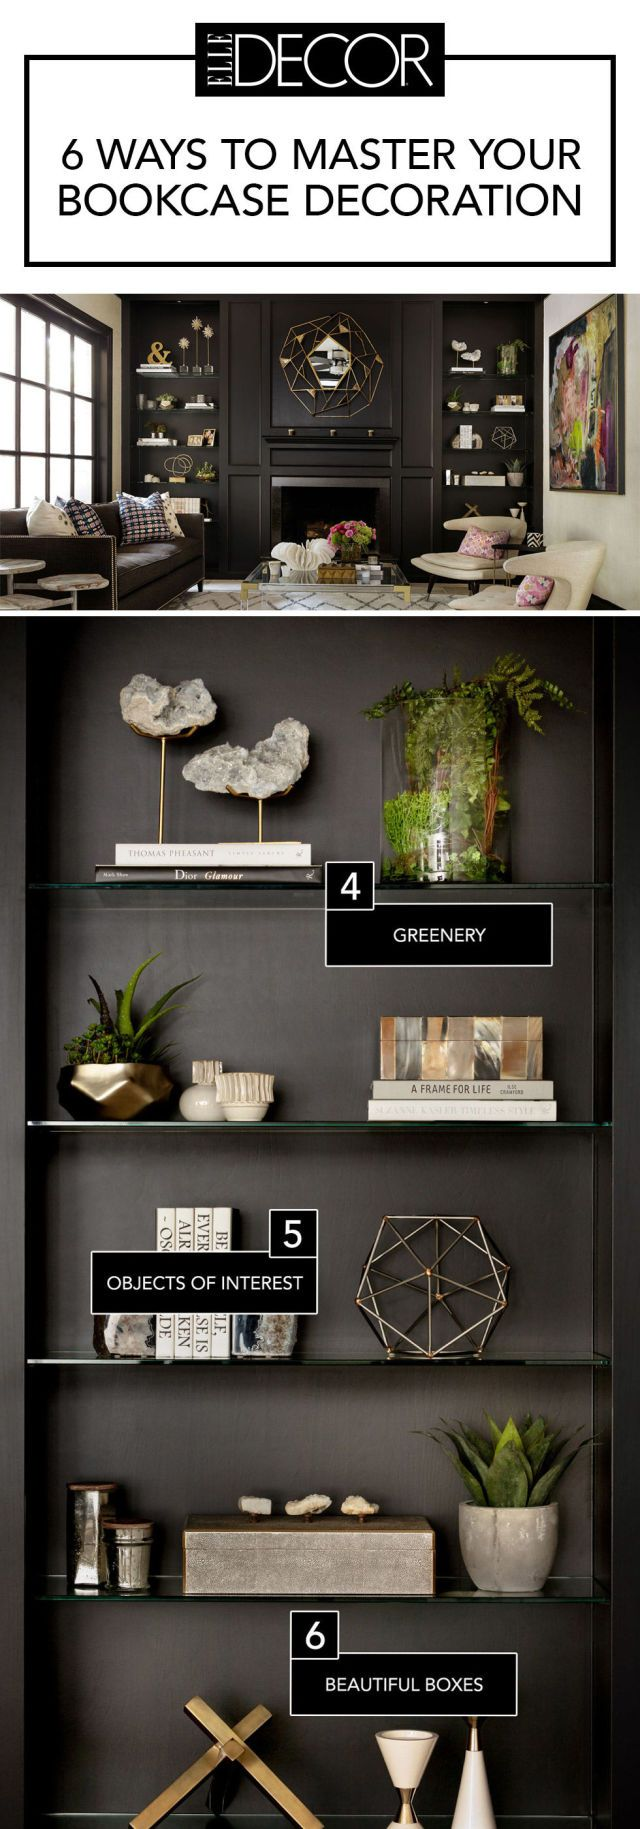 6 Secrets To A Perfectly Styled Bookcase Bookshelf DecoratingDecorate BookshelvesBookshelf DesignLiving Room